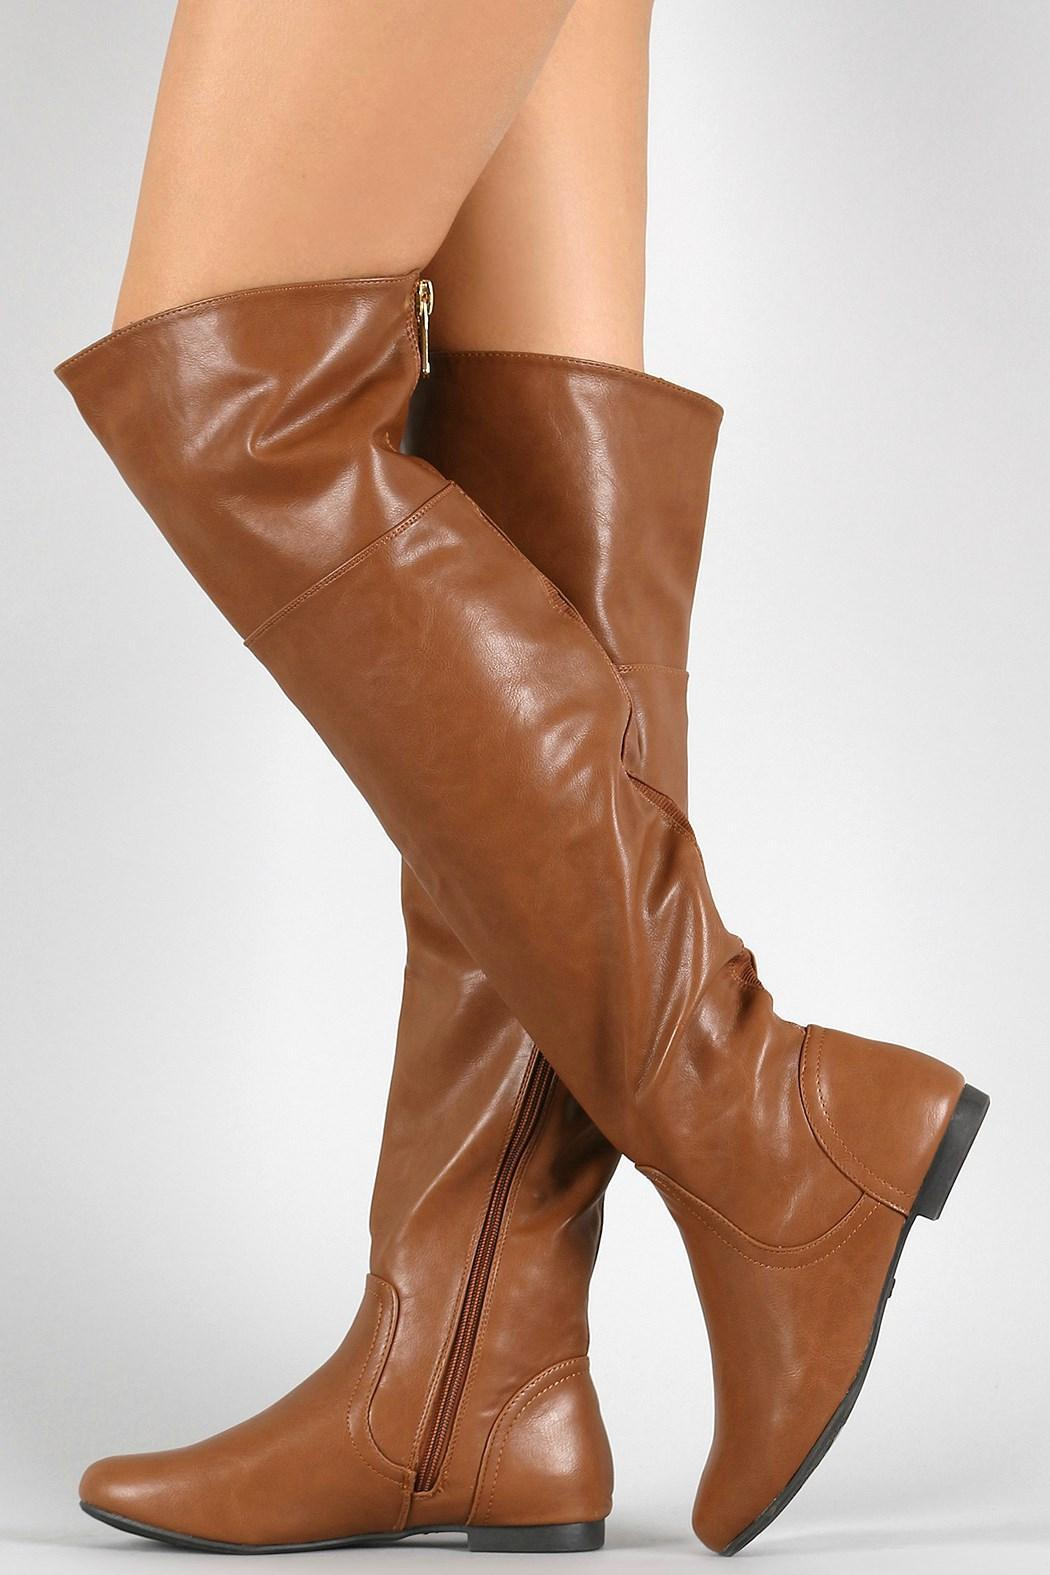 Sexy brown boots